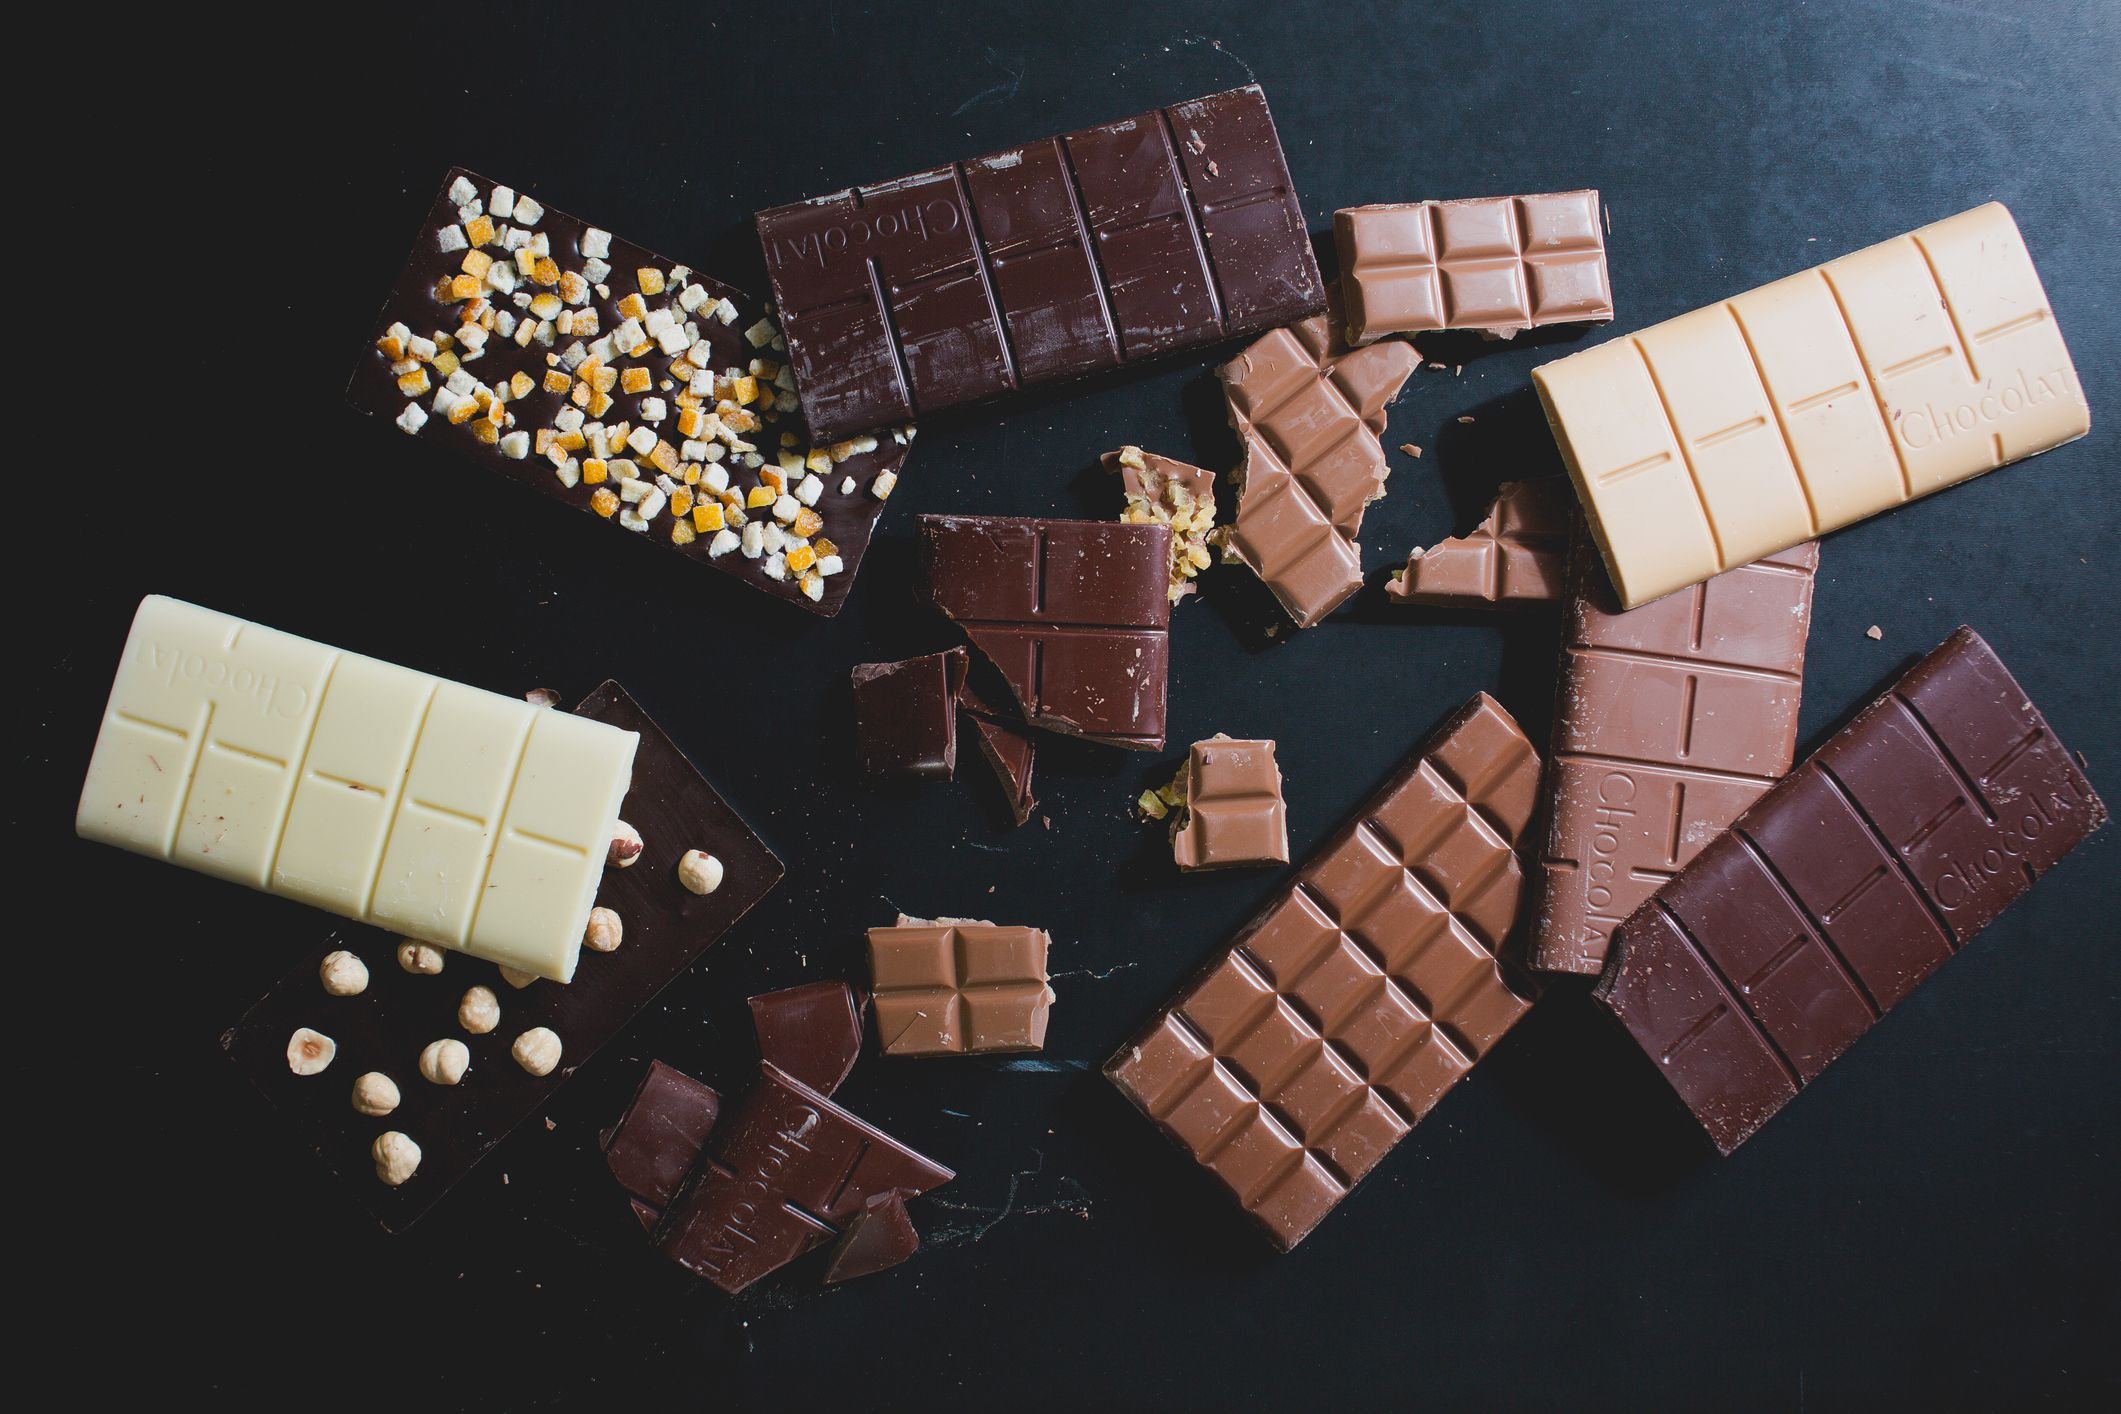 7 Gluten-Free Chocolate Bar Brands